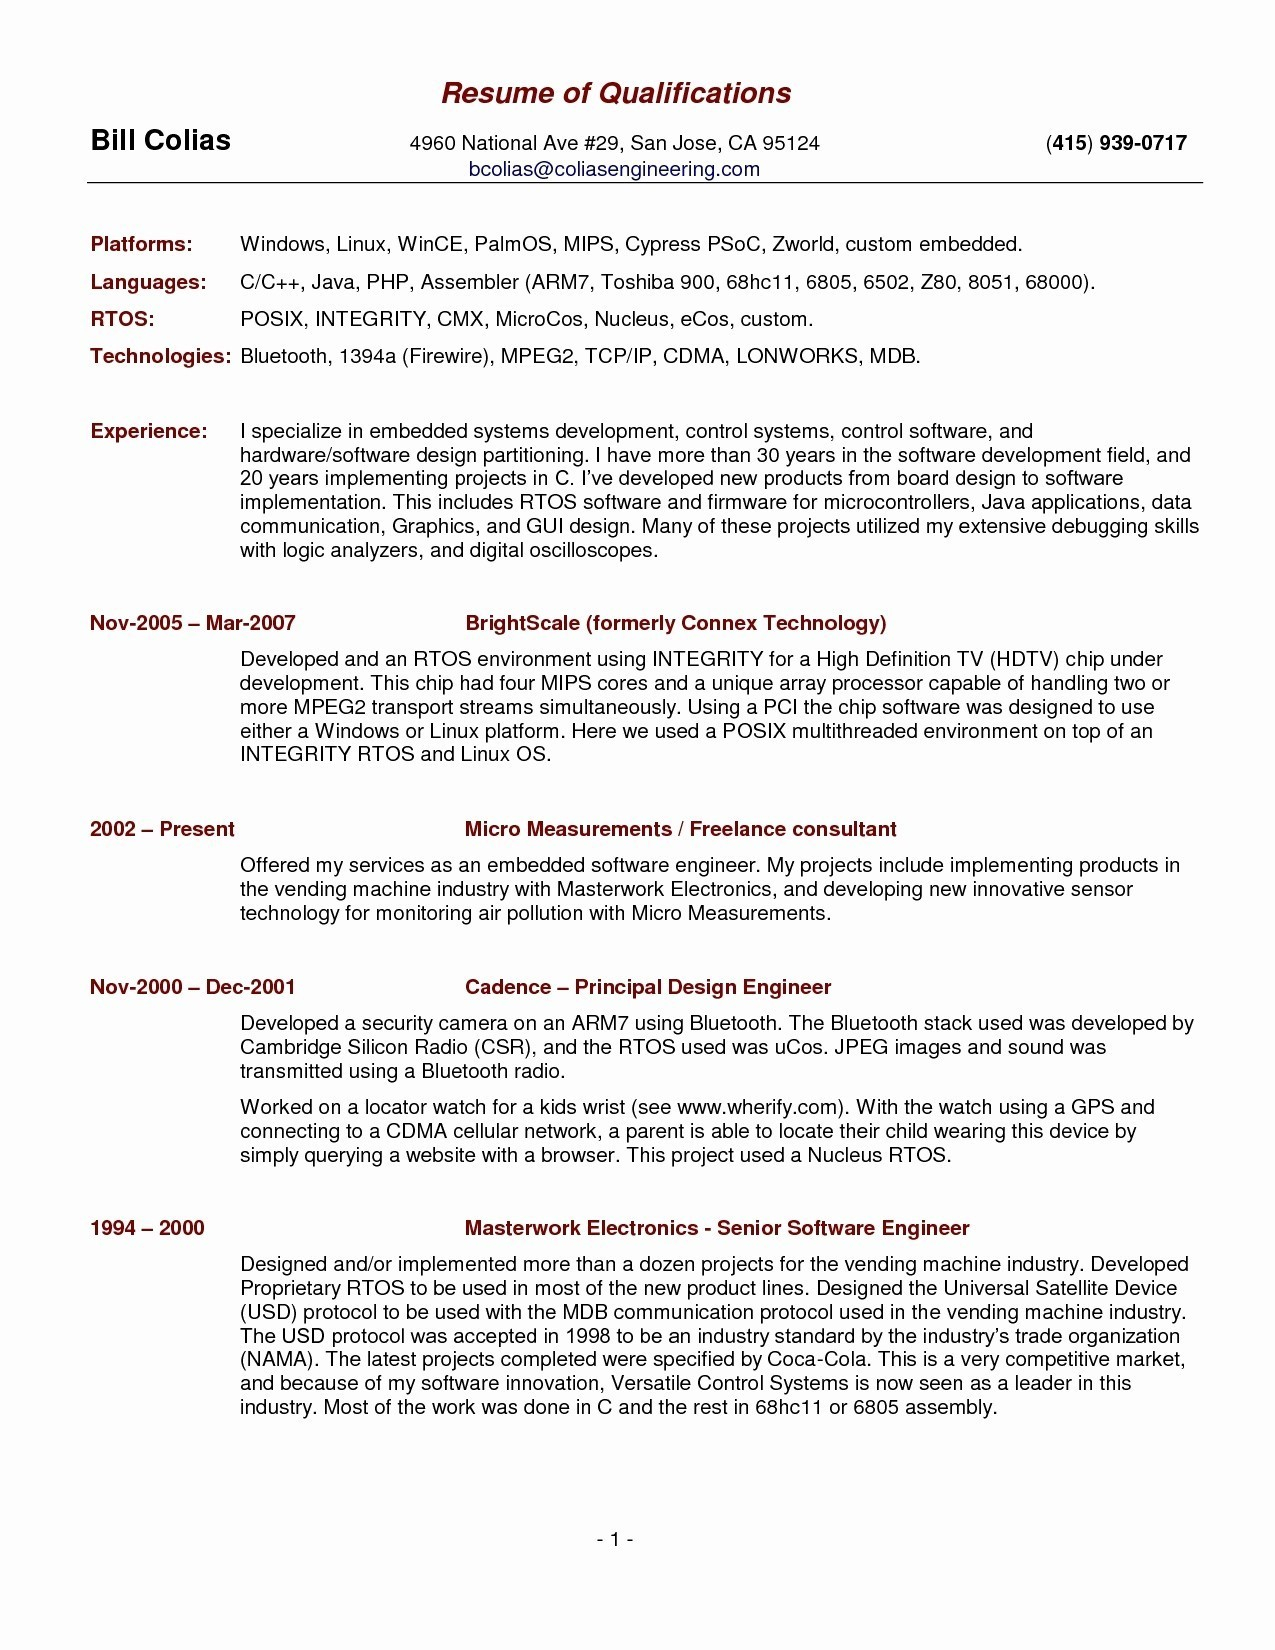 Mba Resume Template - Mba Resume Template Awesome Free How to Make Resume format Gallery